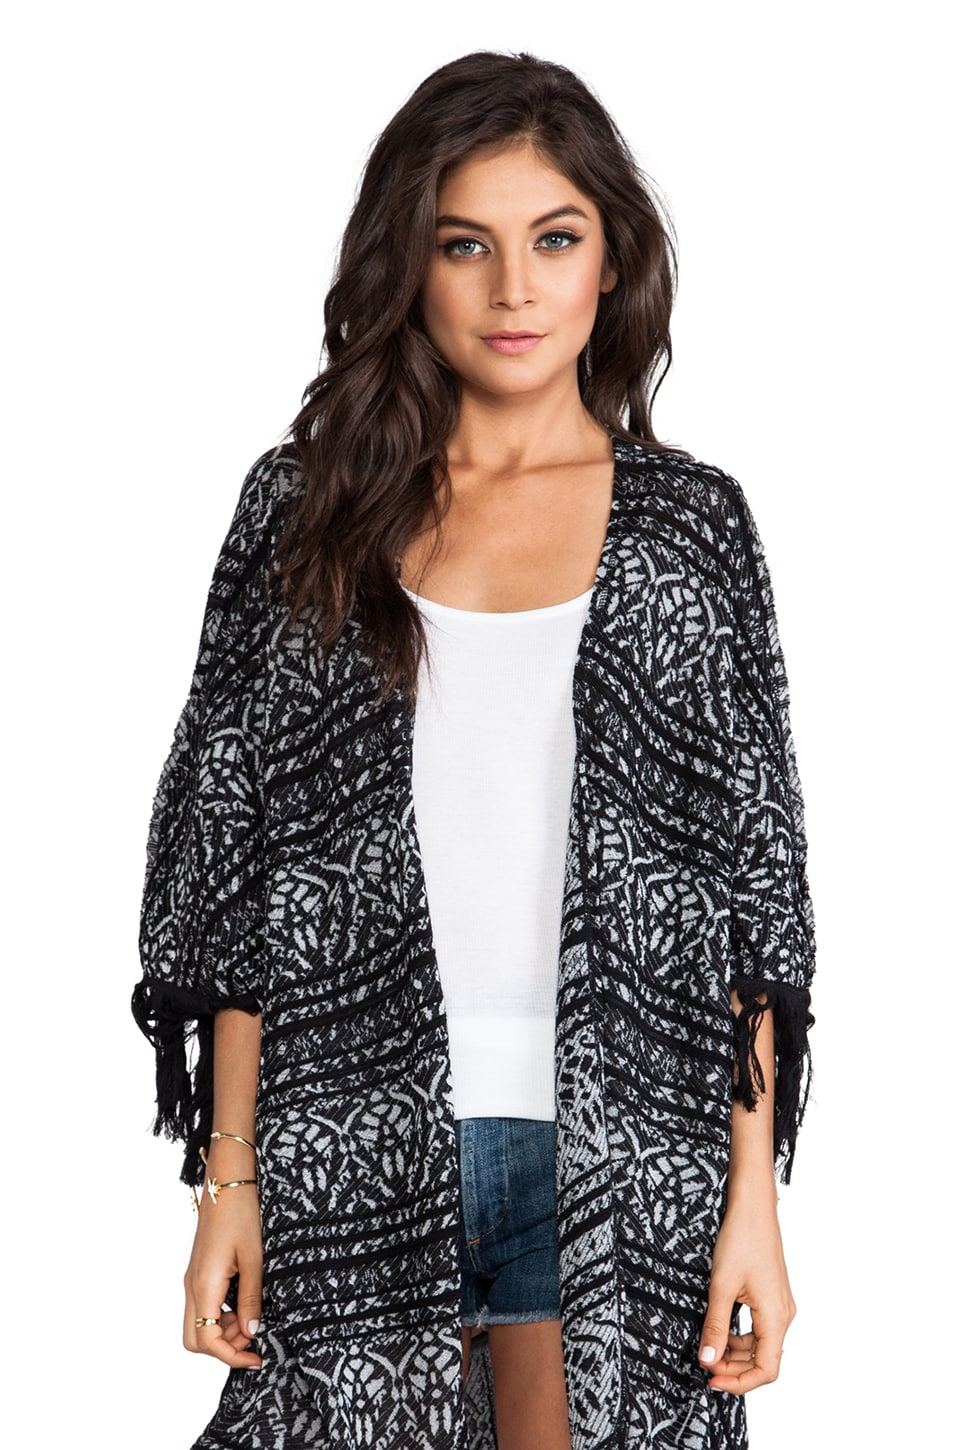 Free People Patterned Kimono Cardigan in Black Combo